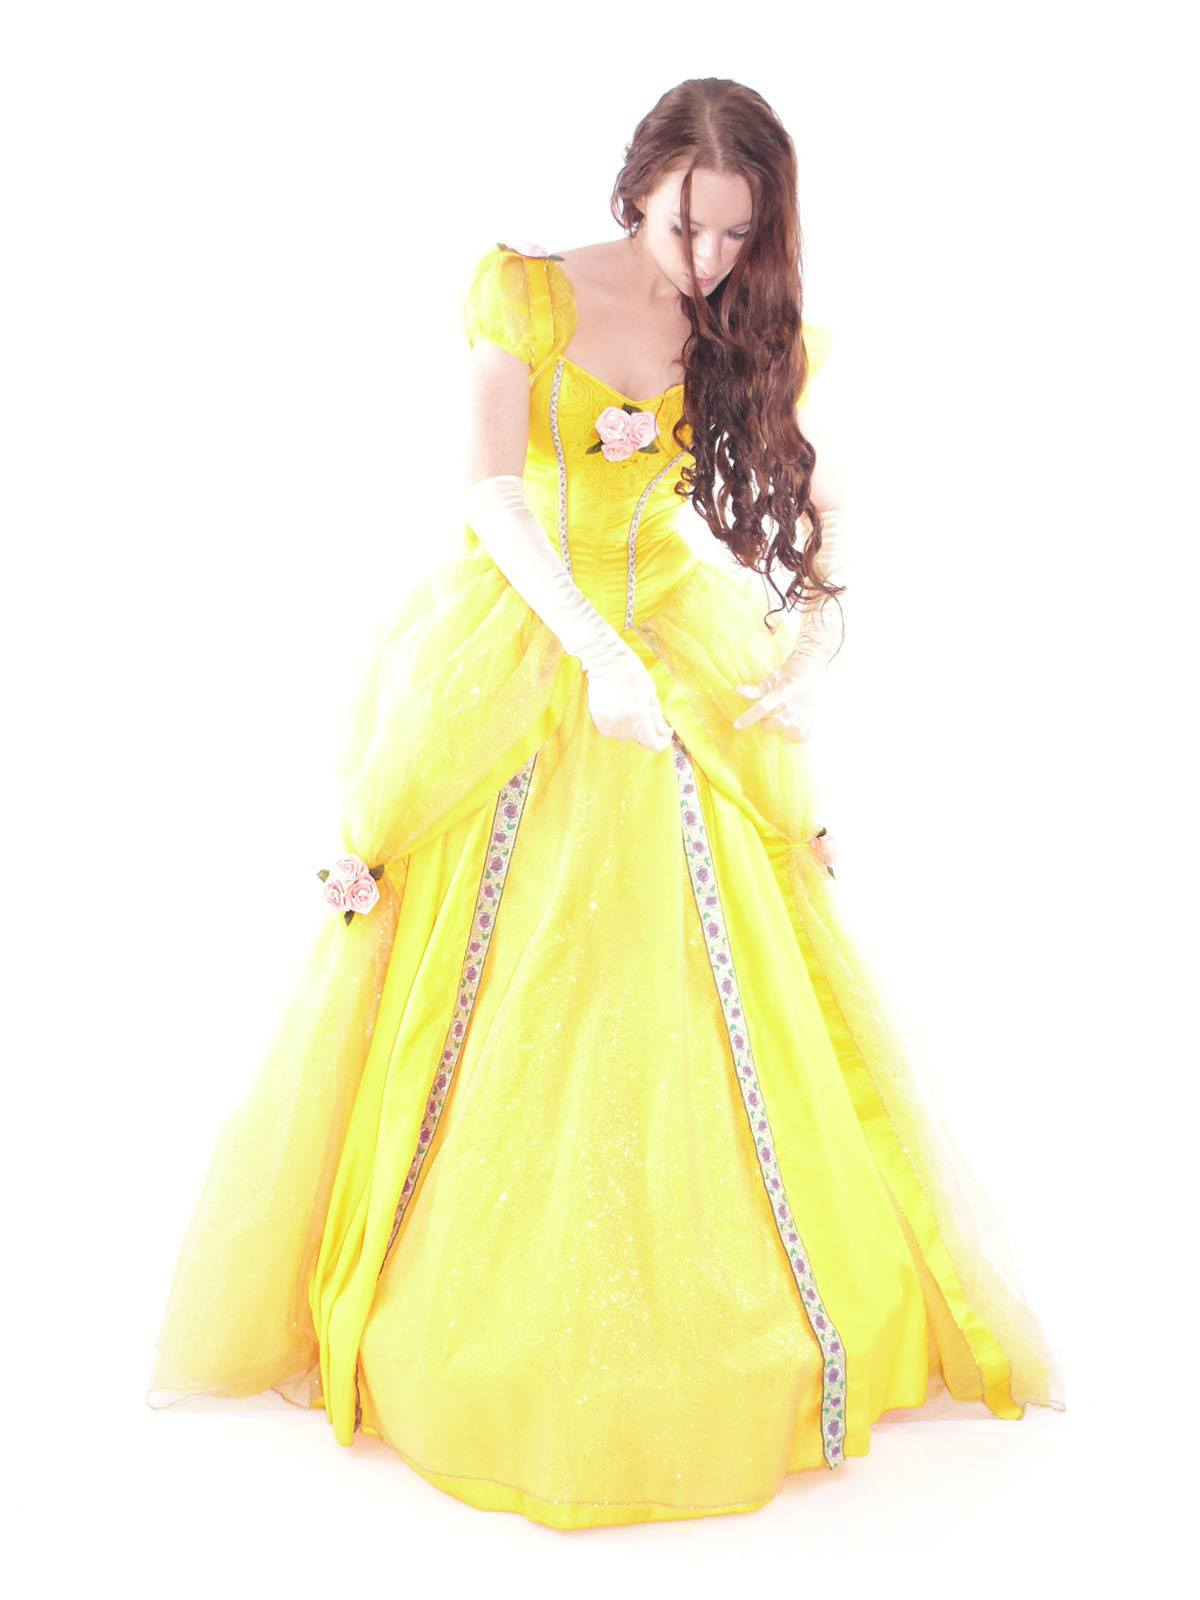 Costumes Women - Belle Deluxe Limited Edition Adult Princess Hire Costume